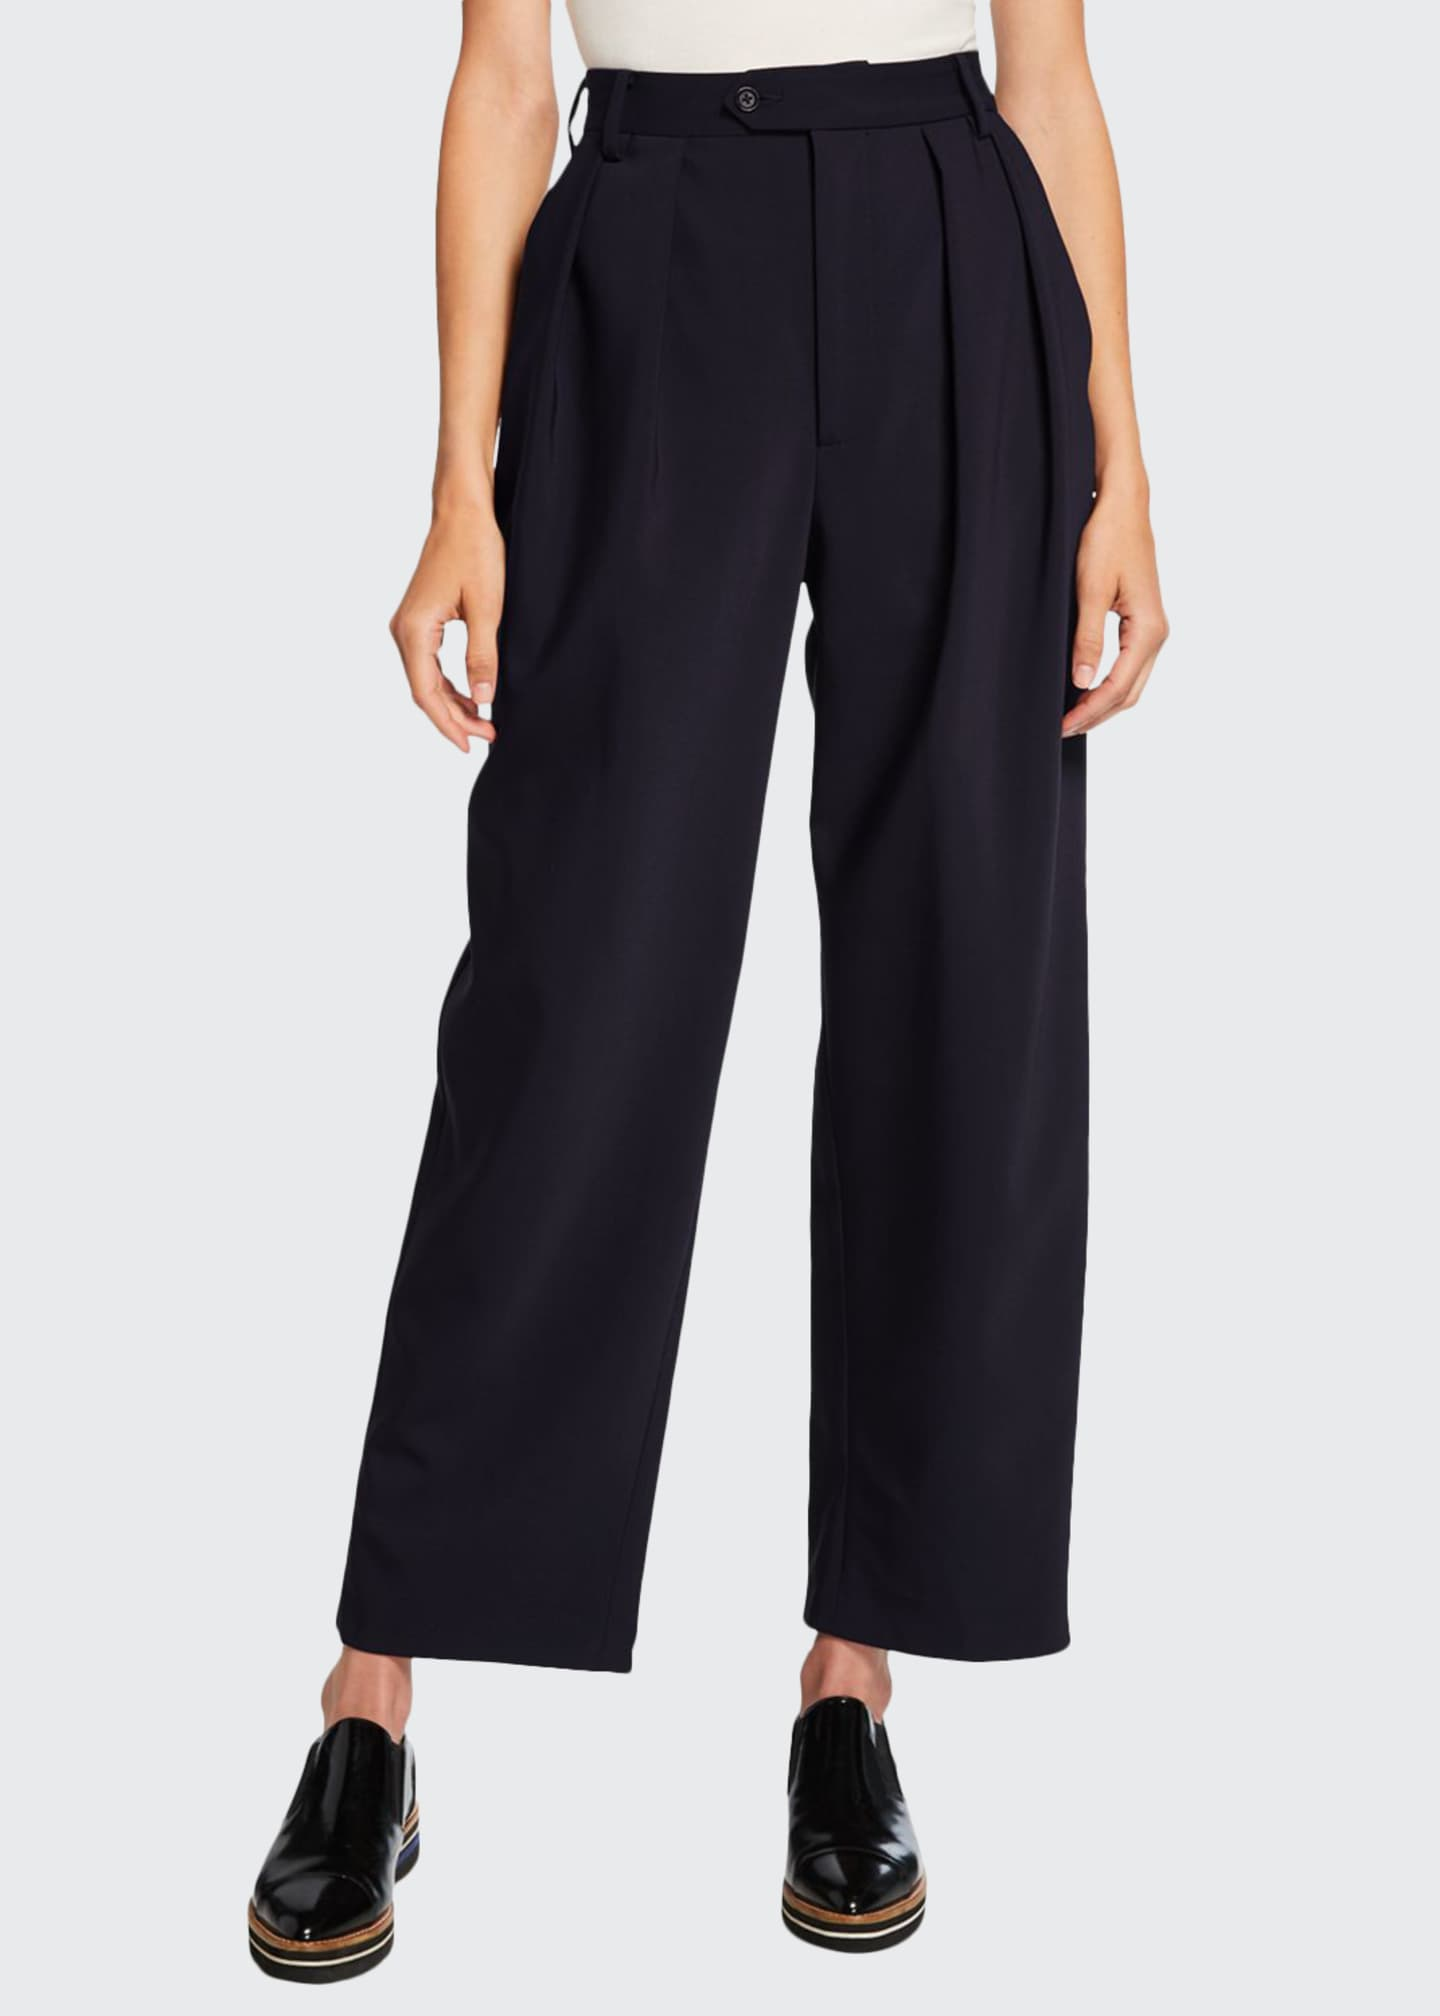 Deveaux New York Isabella Pleated Bonded Wool Pants